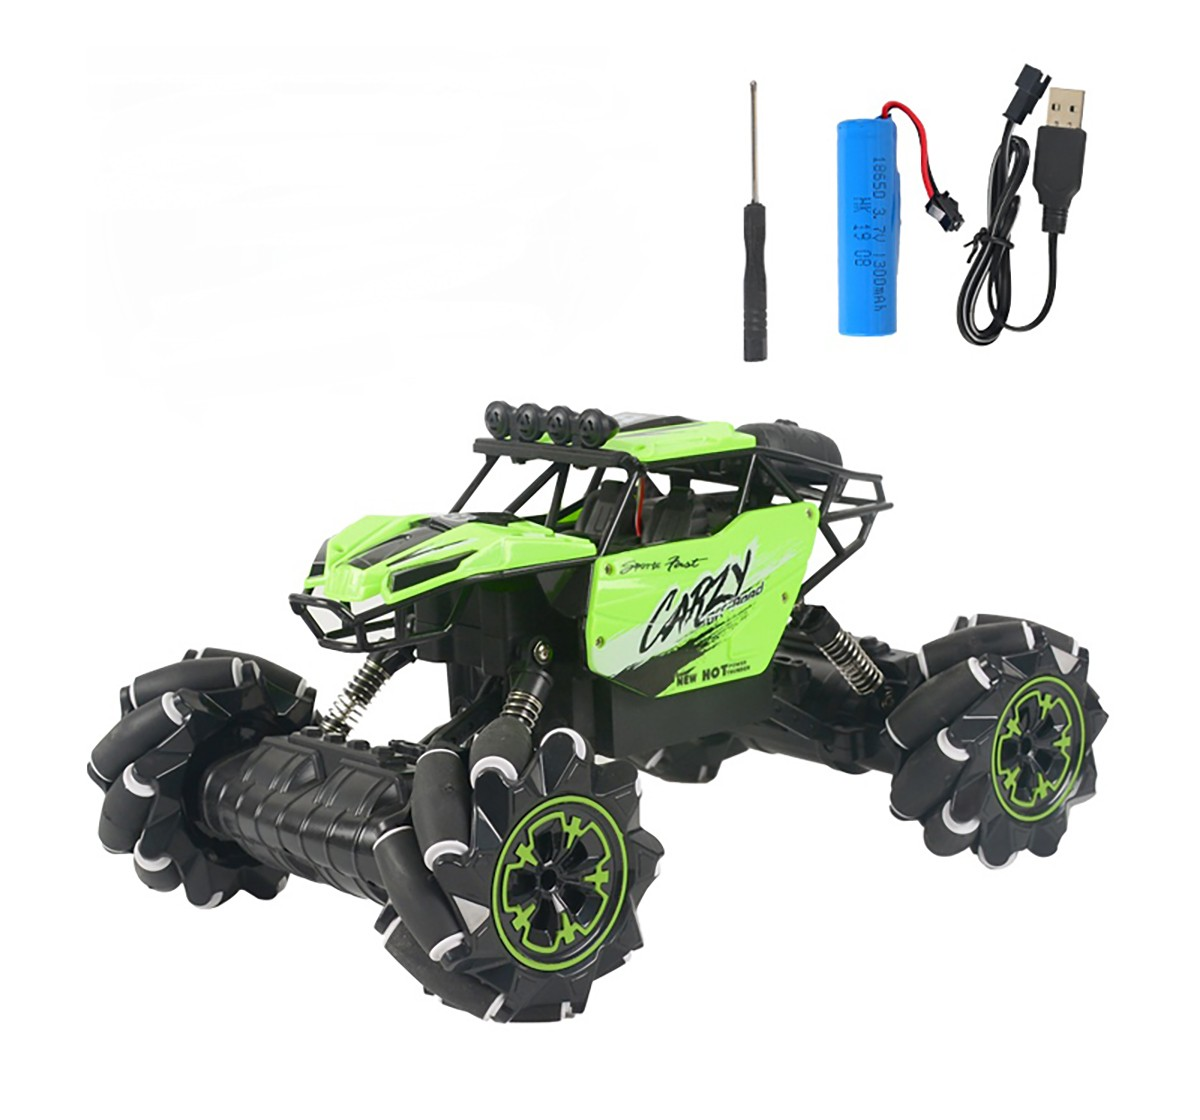 Dihua 1:10 Remote Control Stunt Lateral and Oblique Drift, Dancing off-Road Car Remote Control Toys for Kids age 14Y+